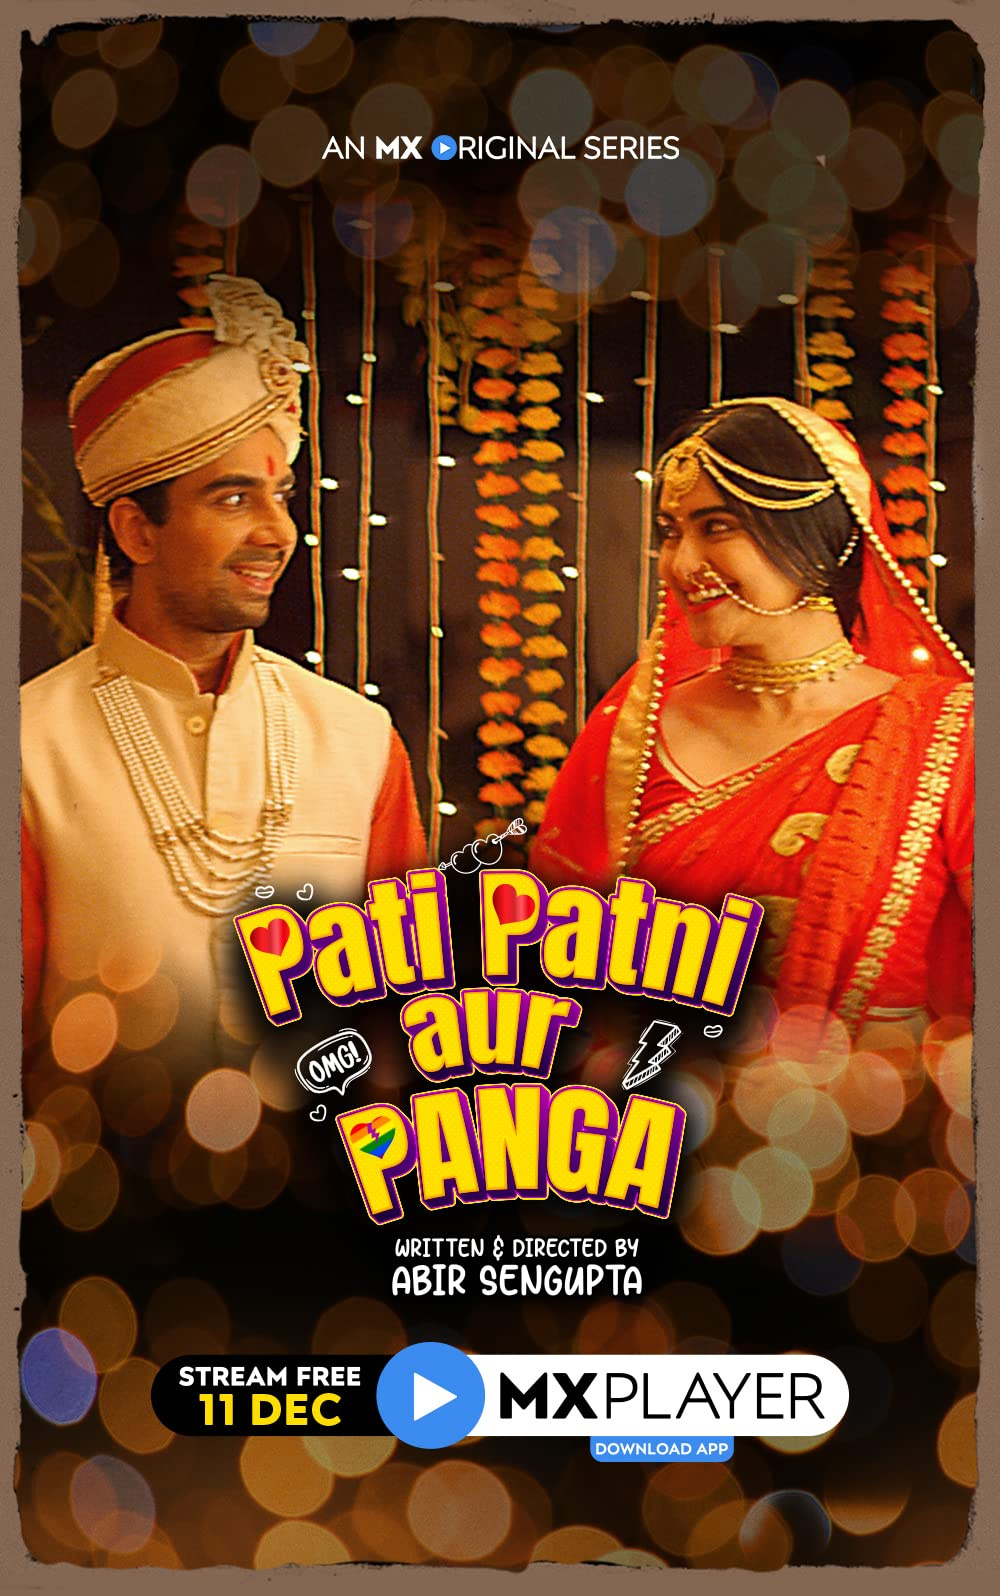 Pati Patni aur Panga 2020 Hindi MX Original Complete Web Series 480p WEB-DL 400MB